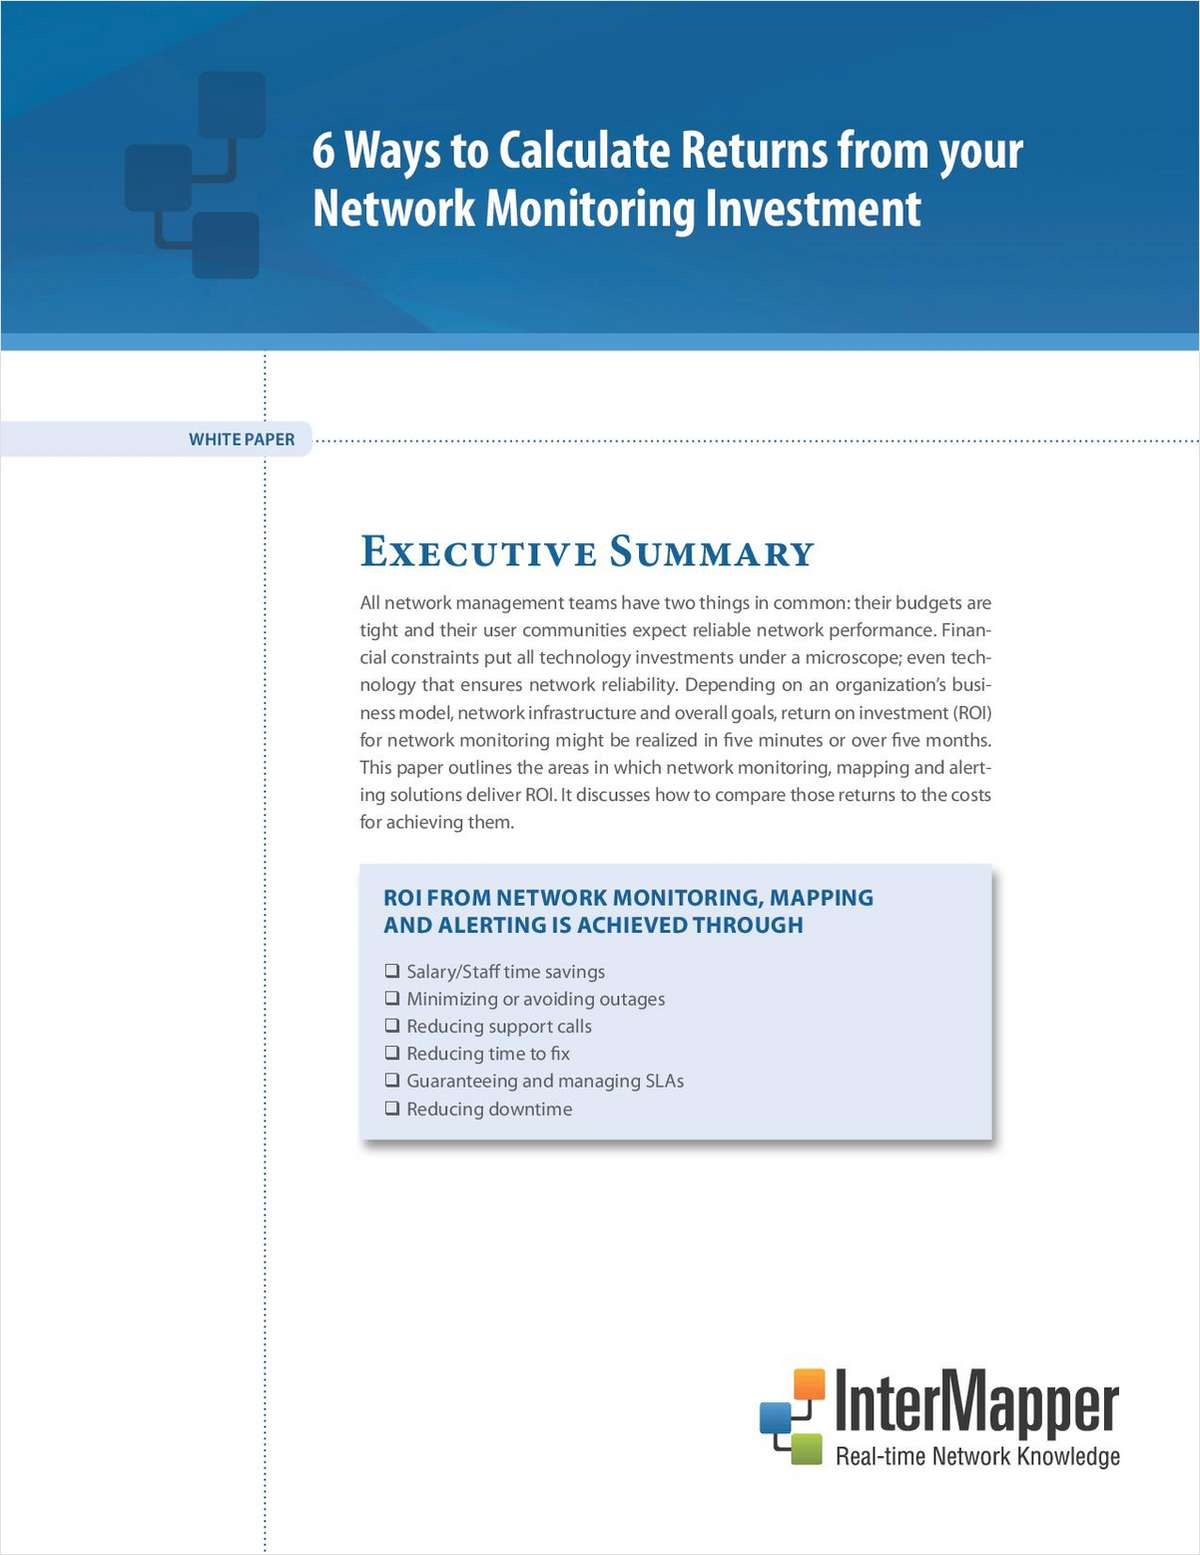 6 Ways to Calculate Returns from Your Network Monitoring Investment